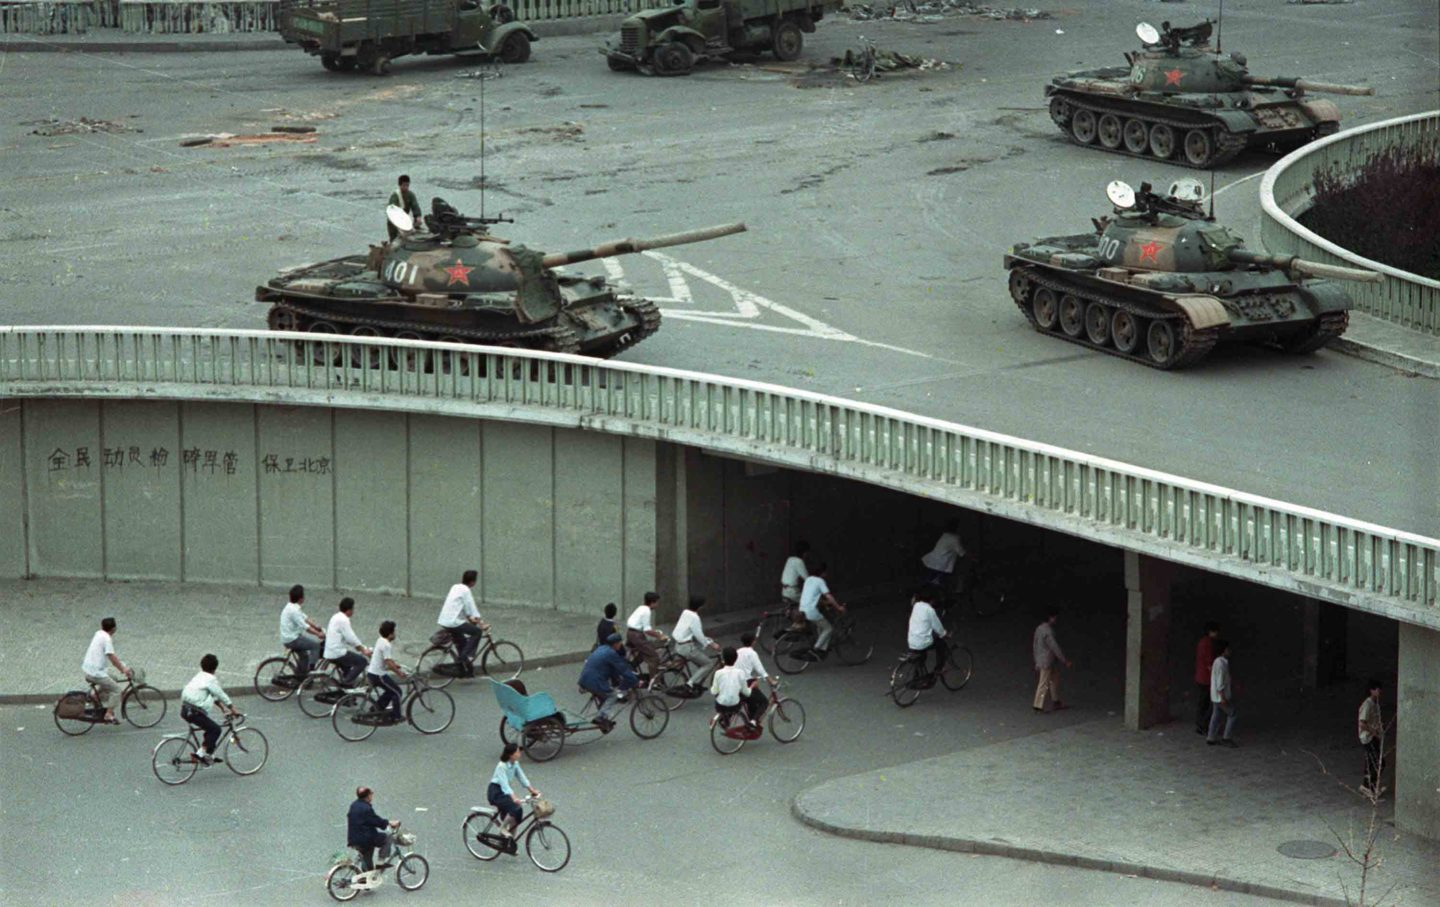 Beijing, after the Tiananmen Square massacre